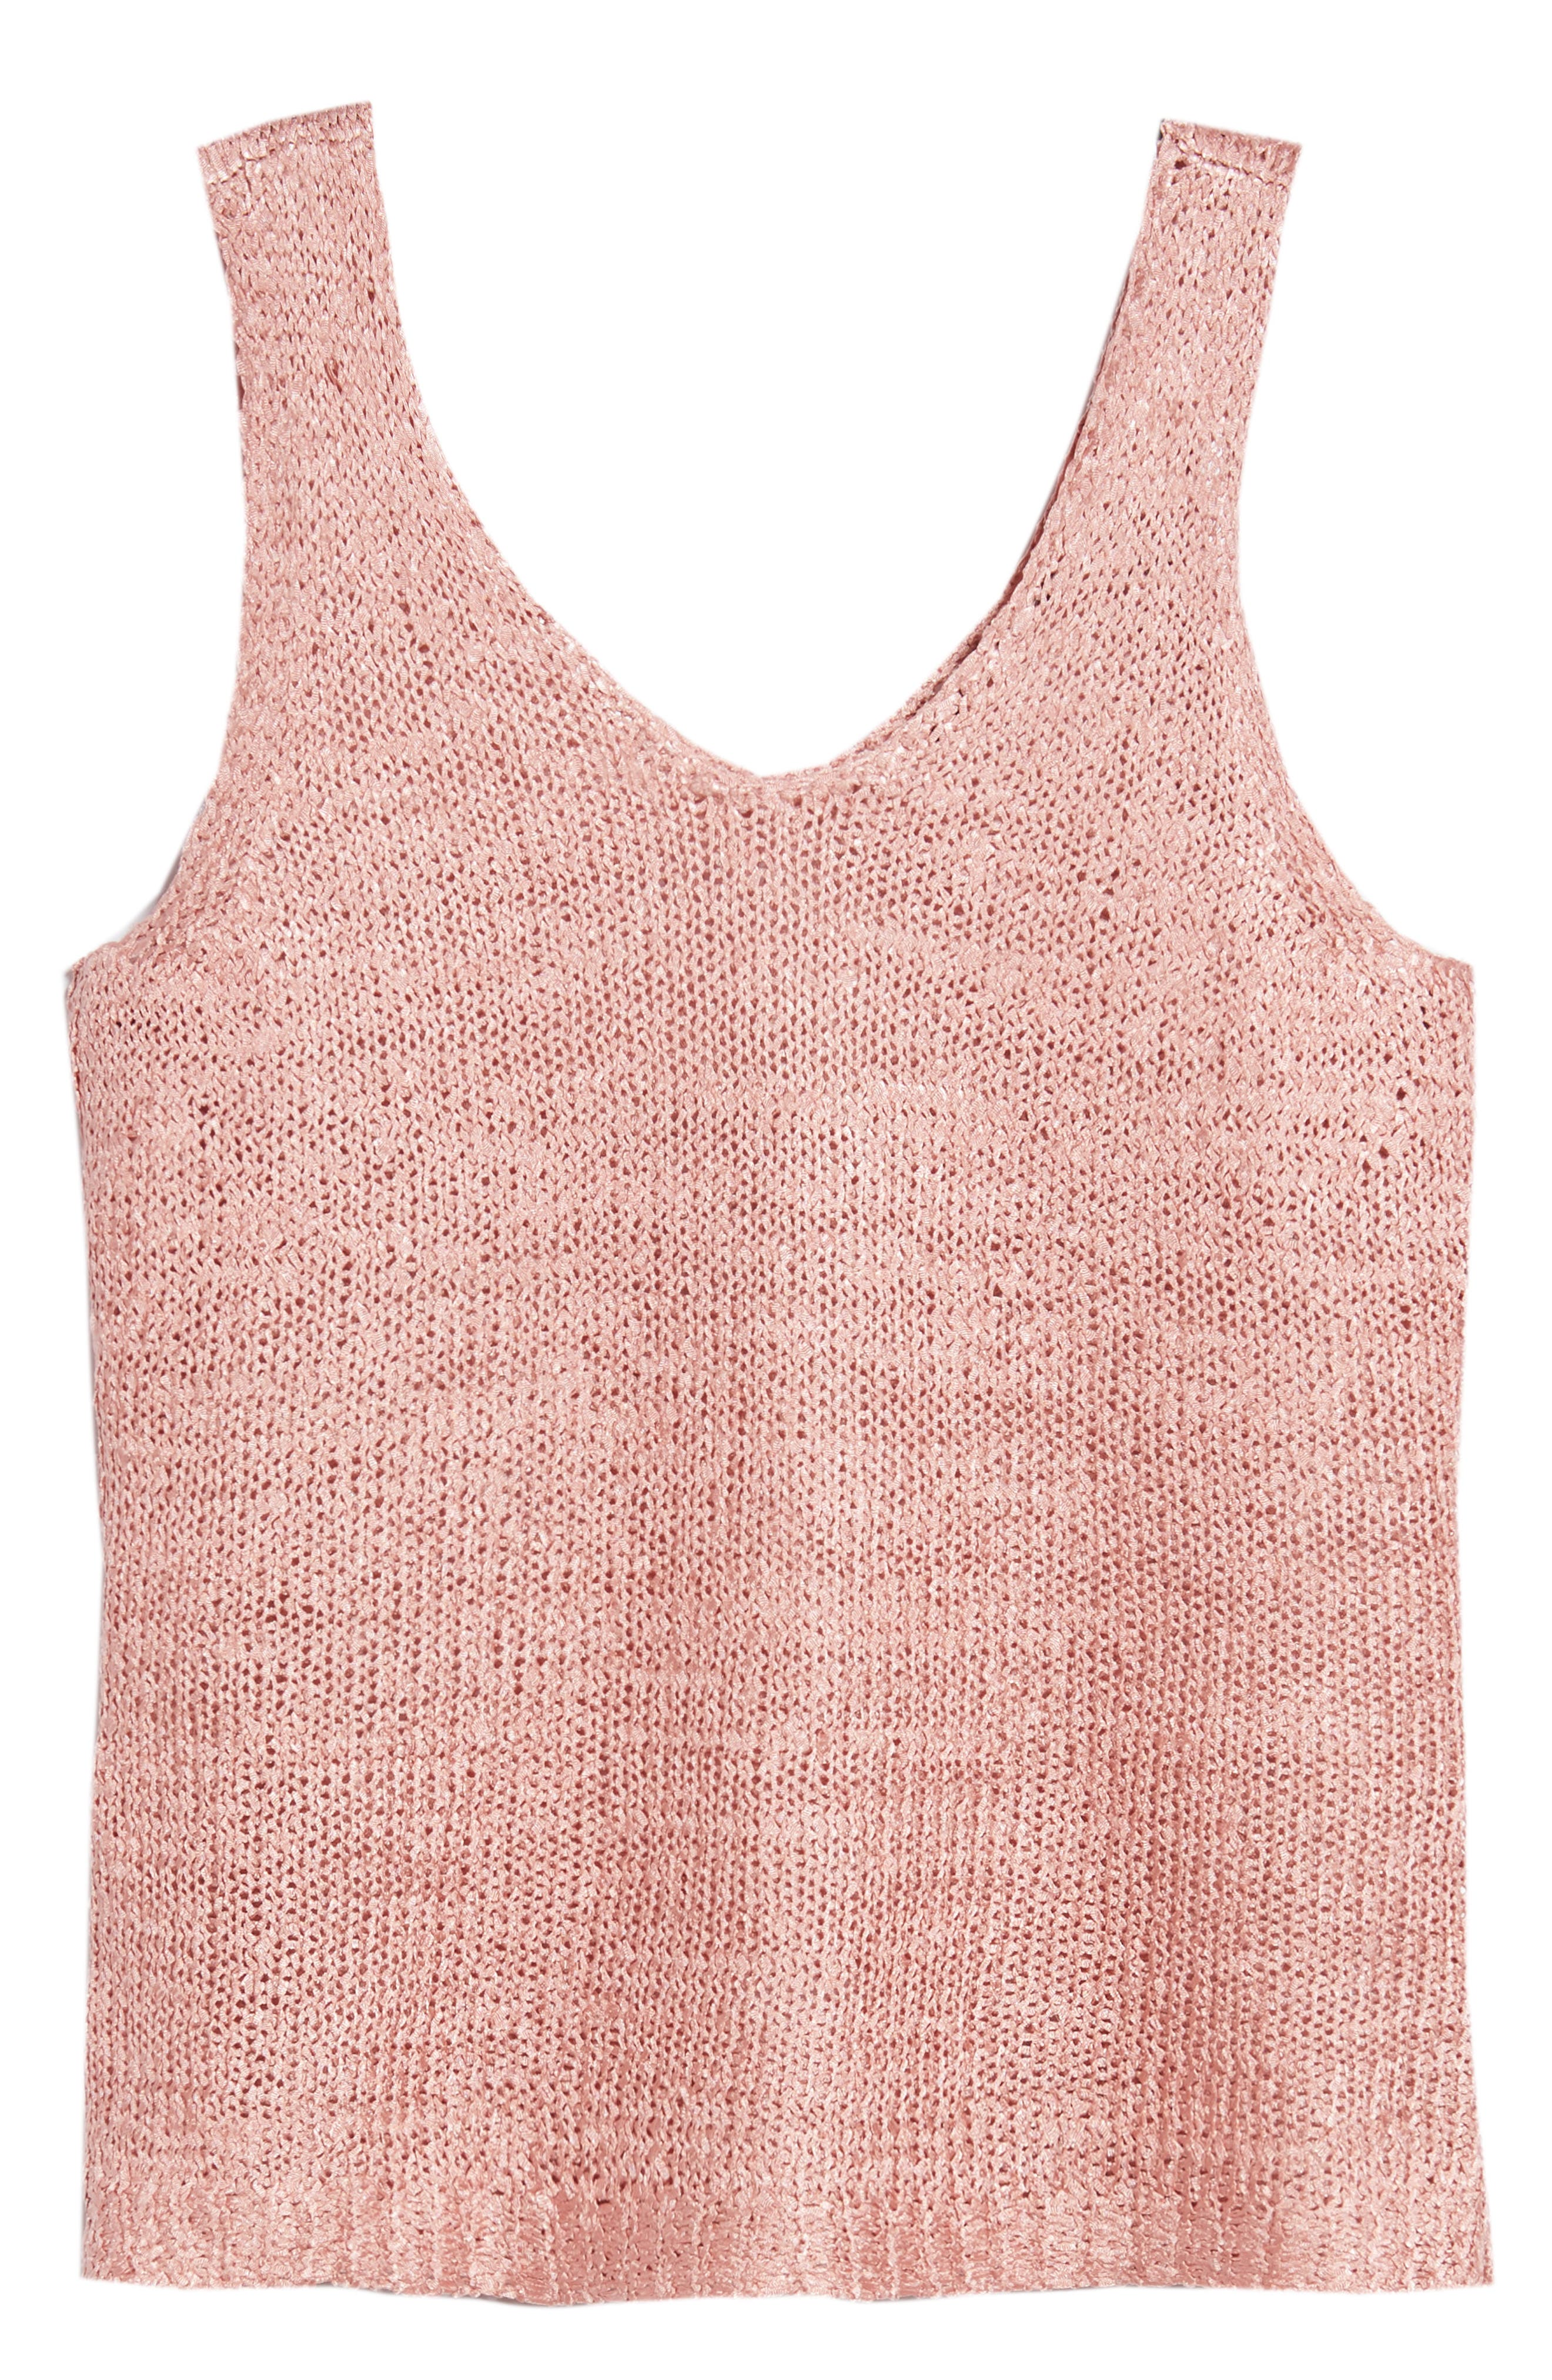 Rhythm of the Road Tank,                         Main,                         color, Pink Clay